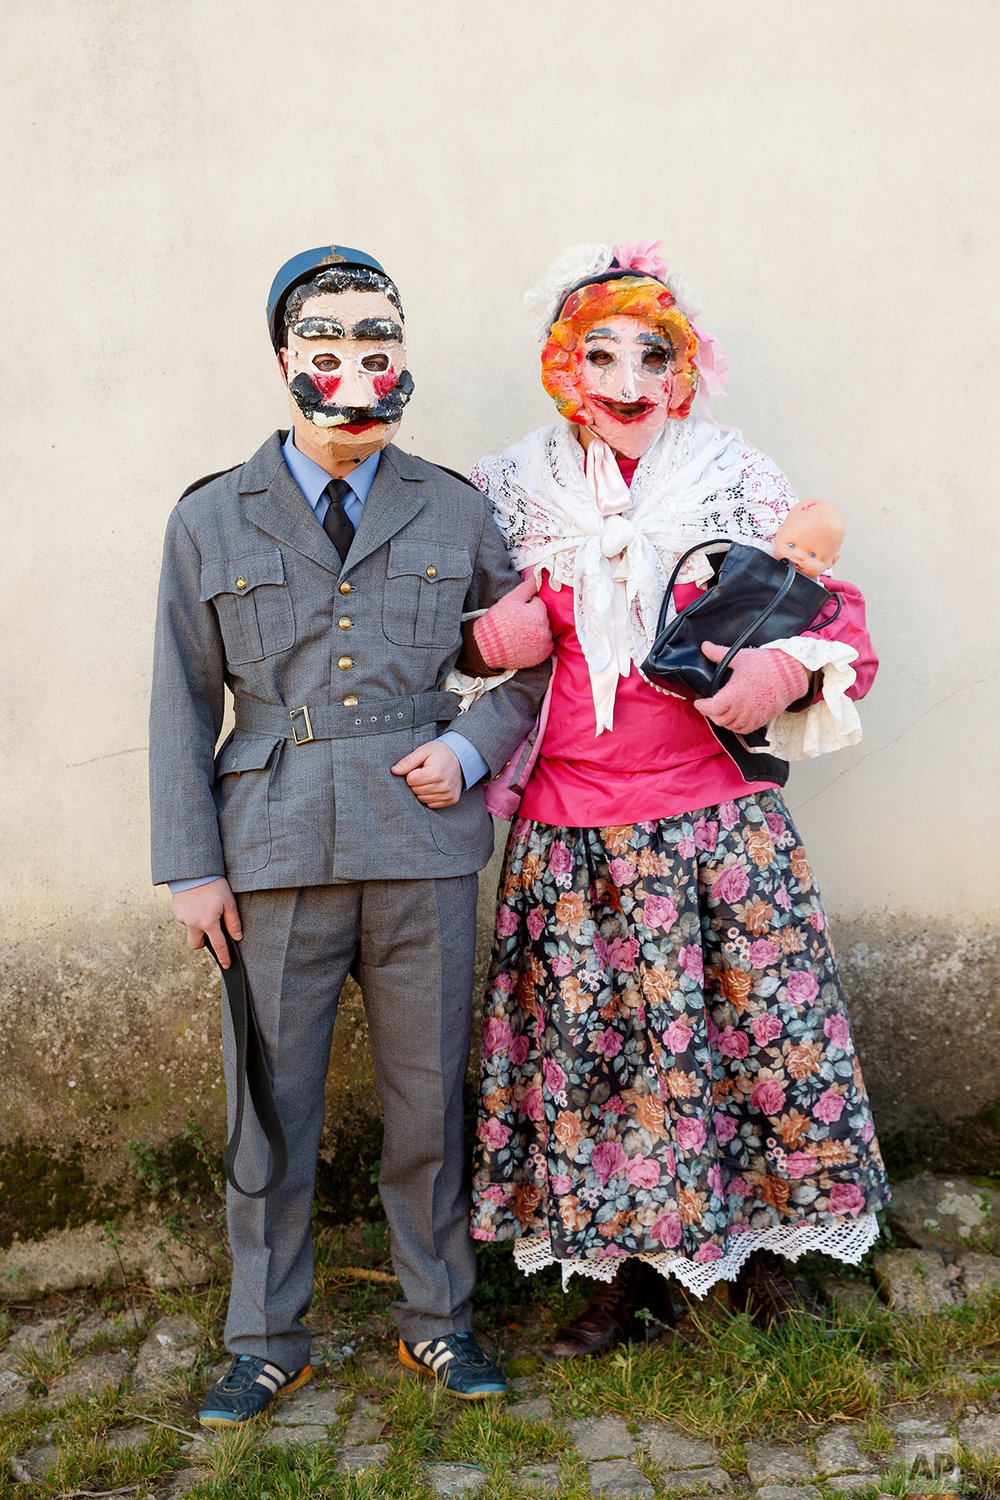 In this photo taken on Saturday, Jan. 7, 2017, a couple dress as characters from 'la Vaquilla' wear ancient masks as they pose for a photo, during a winter masquerade gathering in Salsas, Portugal. (AP Photo/Daniel Ochoa de Olza)